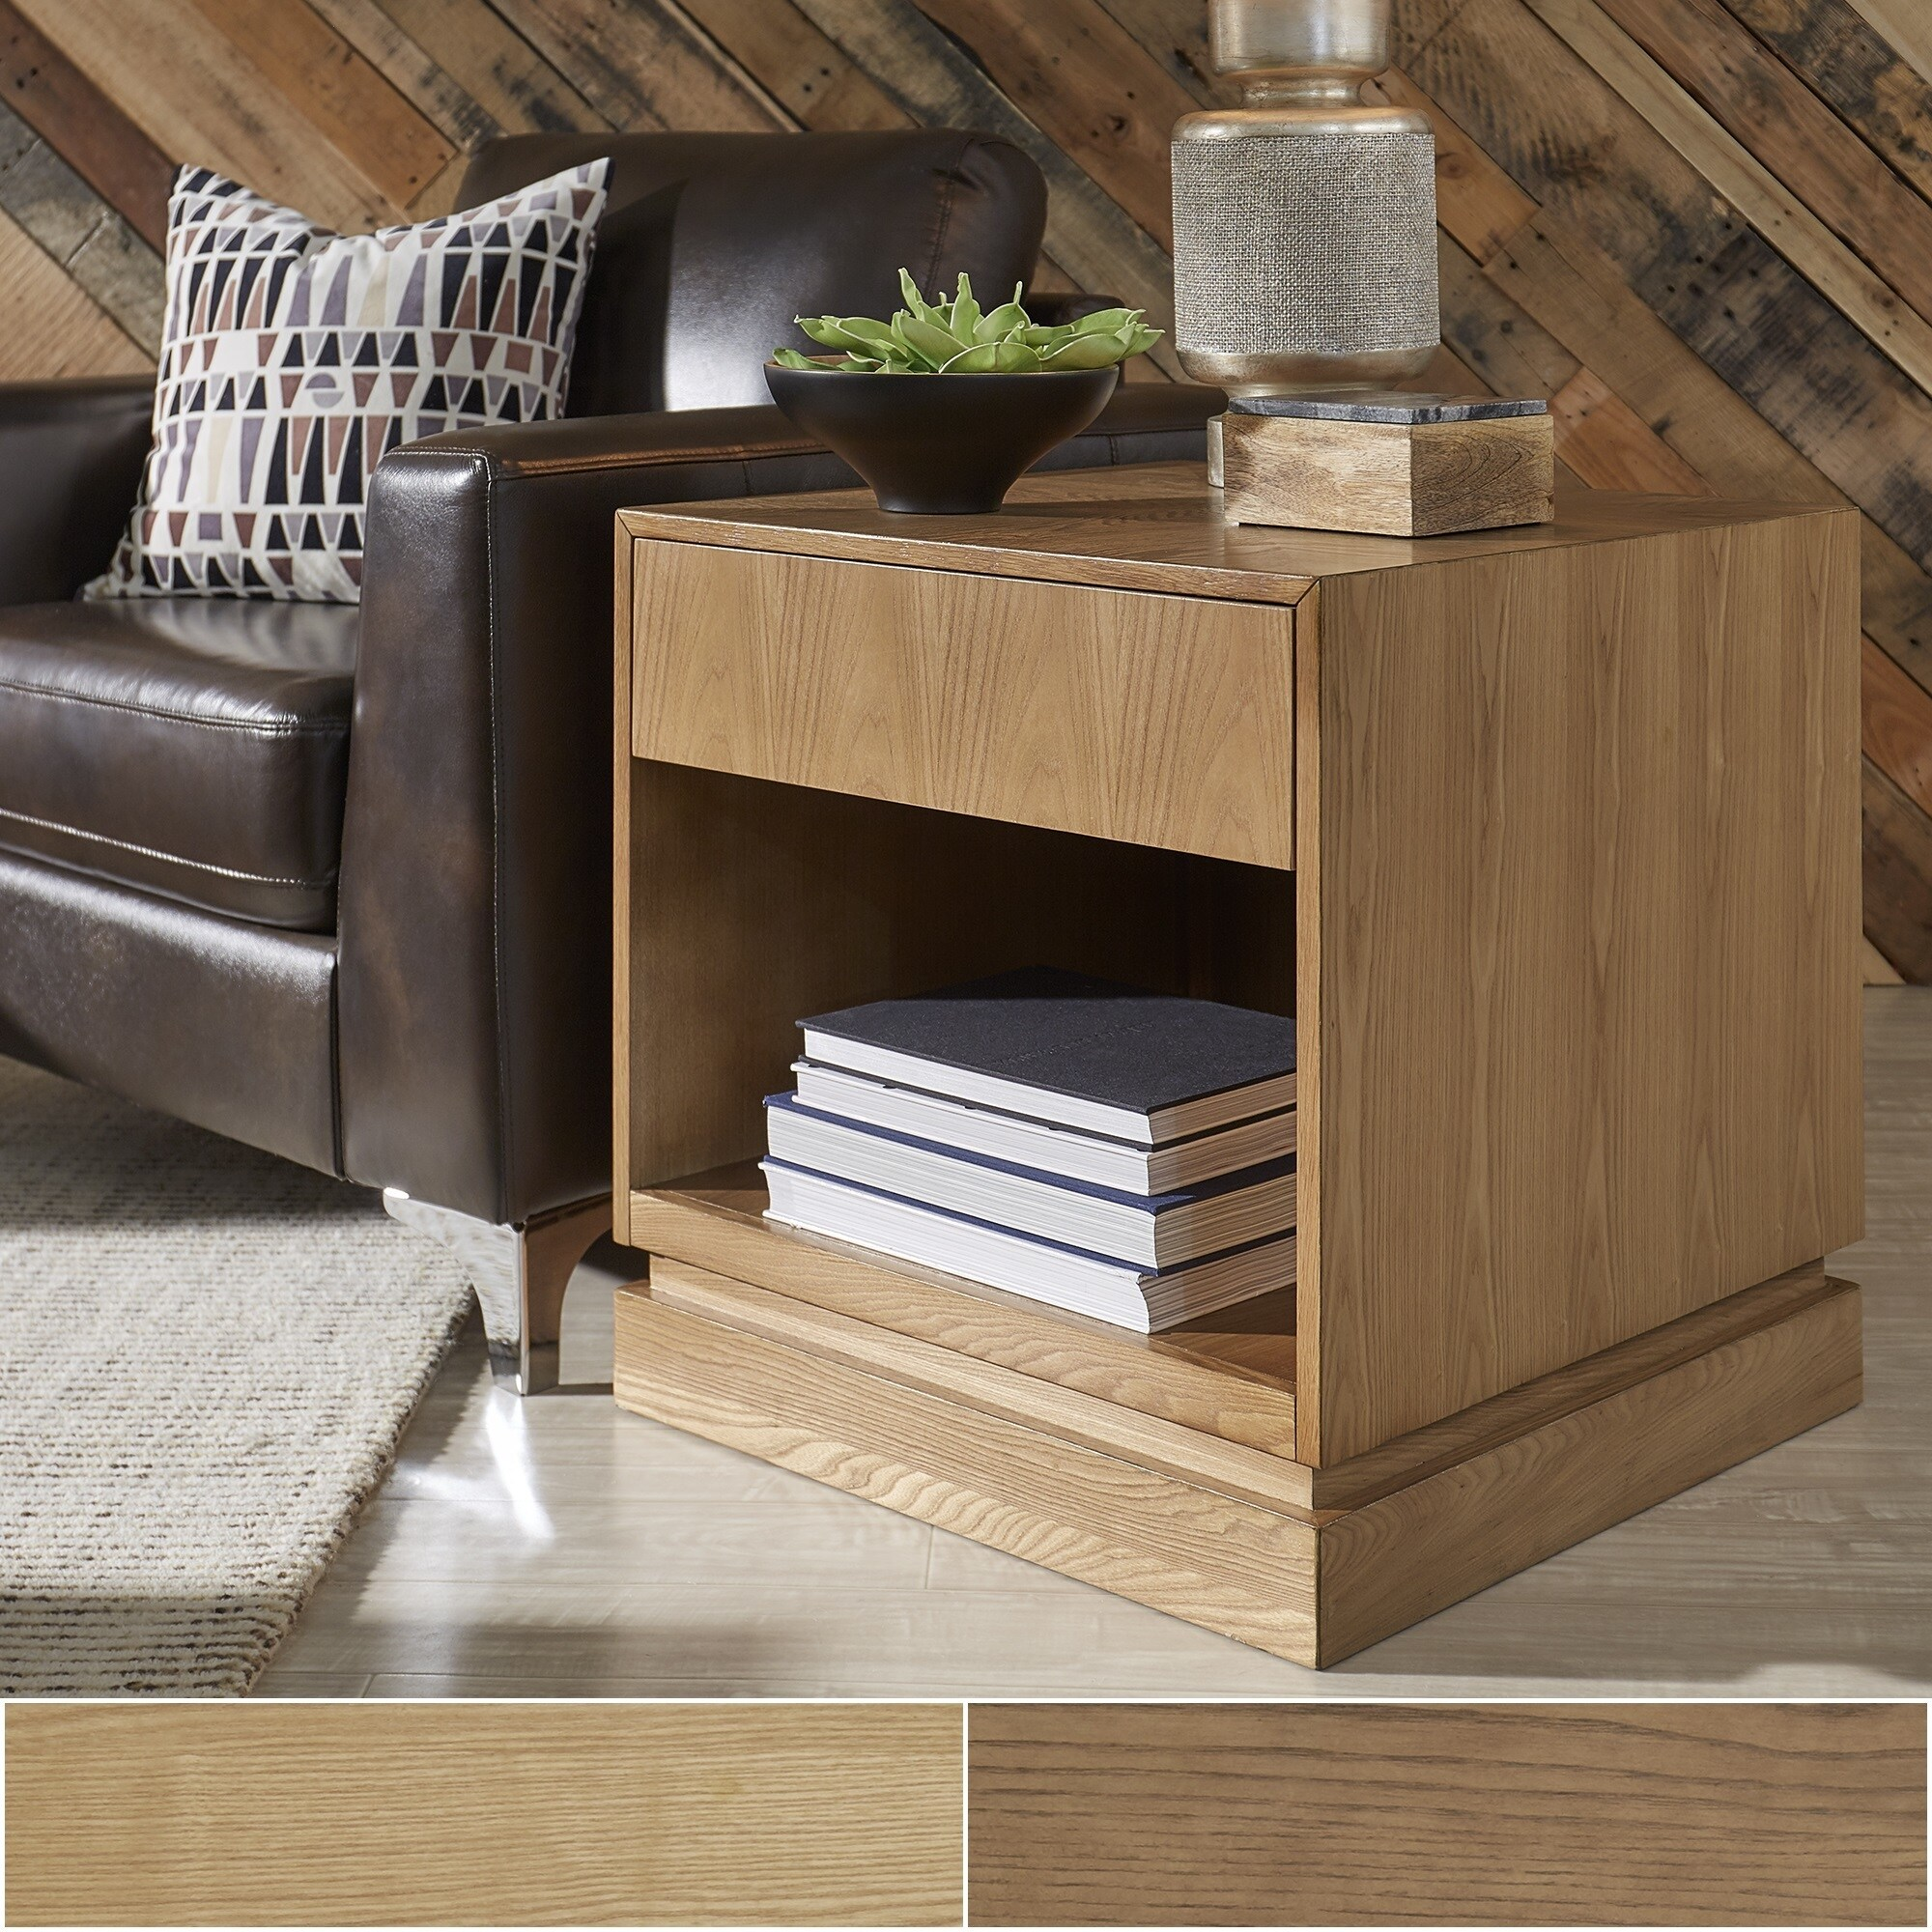 Hadley 1-Drawer Mid-Century Wood End Table by iNSPIRE Q Modern - Free  Shipping Today - Overstock.com - 25457519